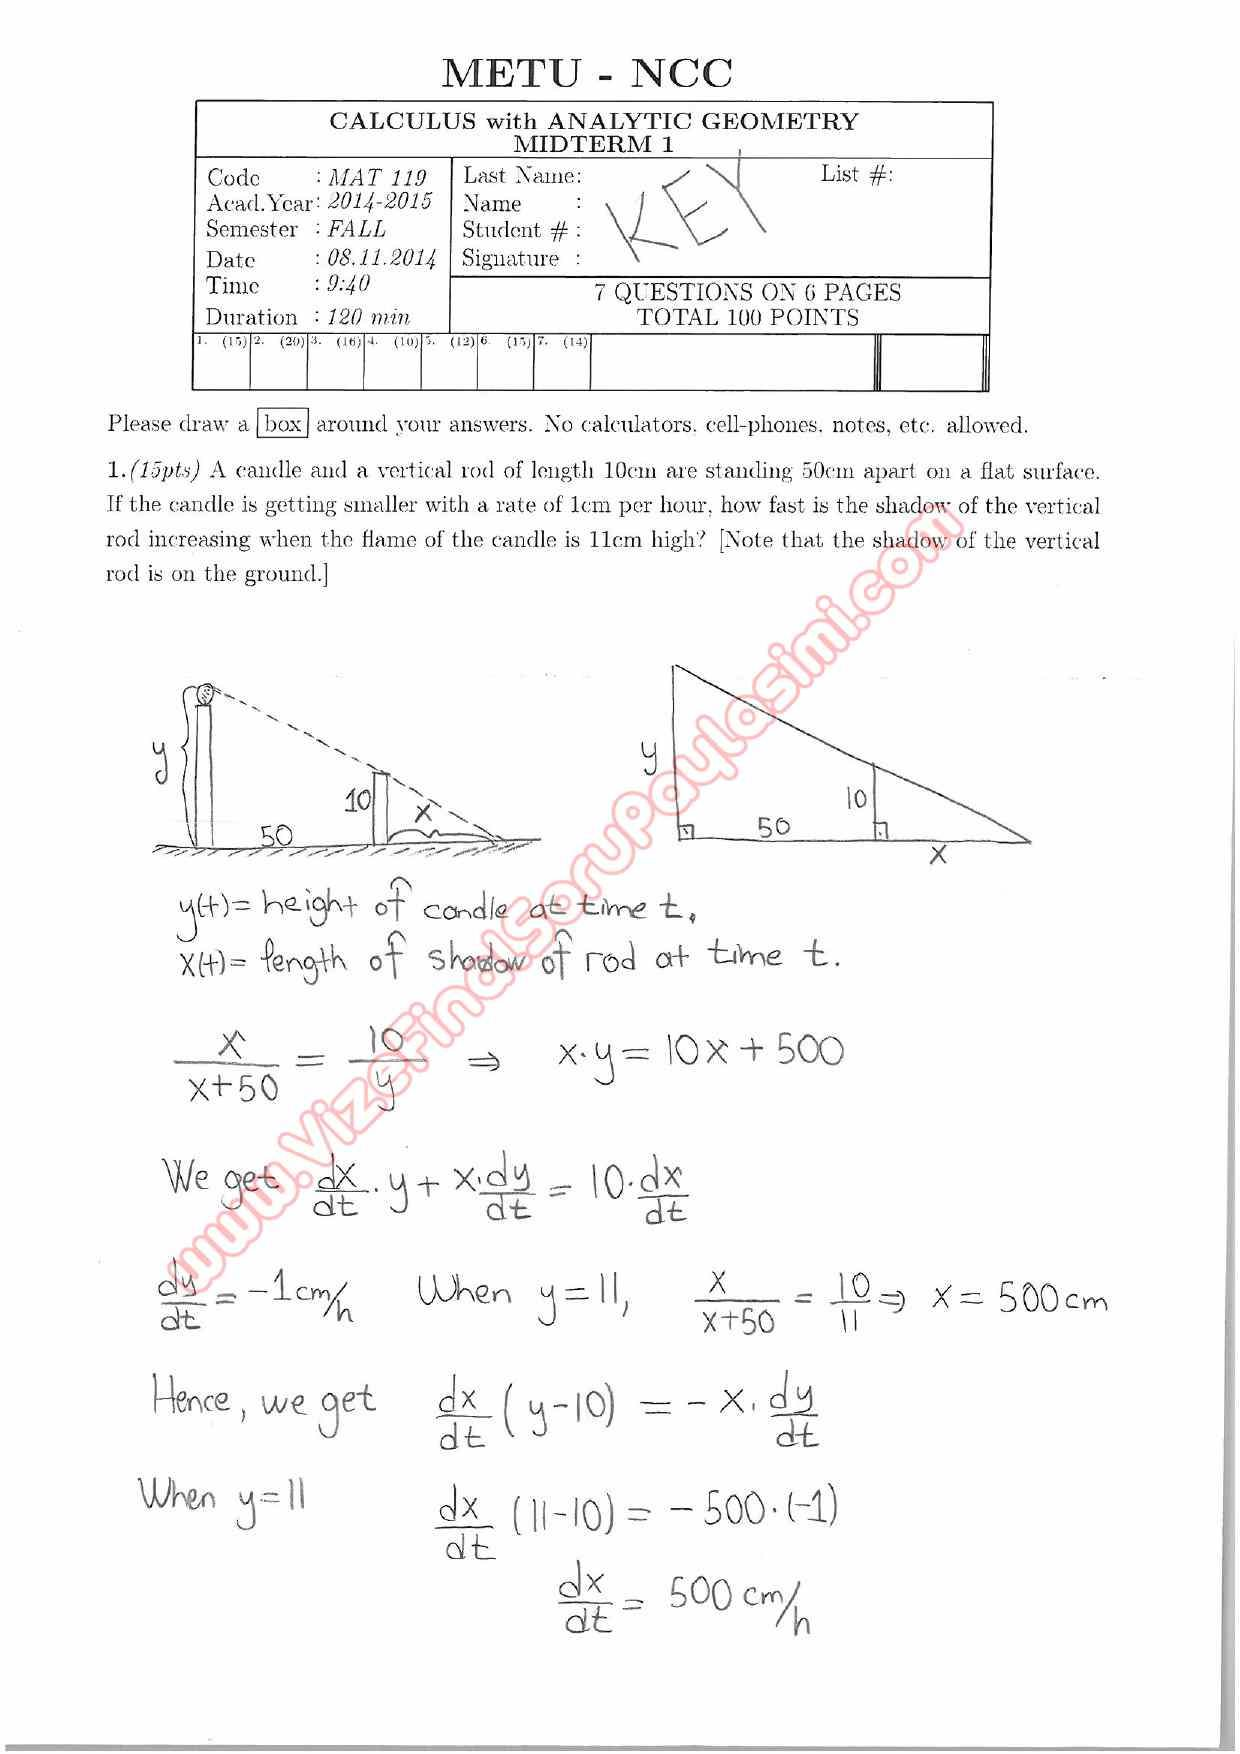 Calculus With Analytic Geometry solution manual